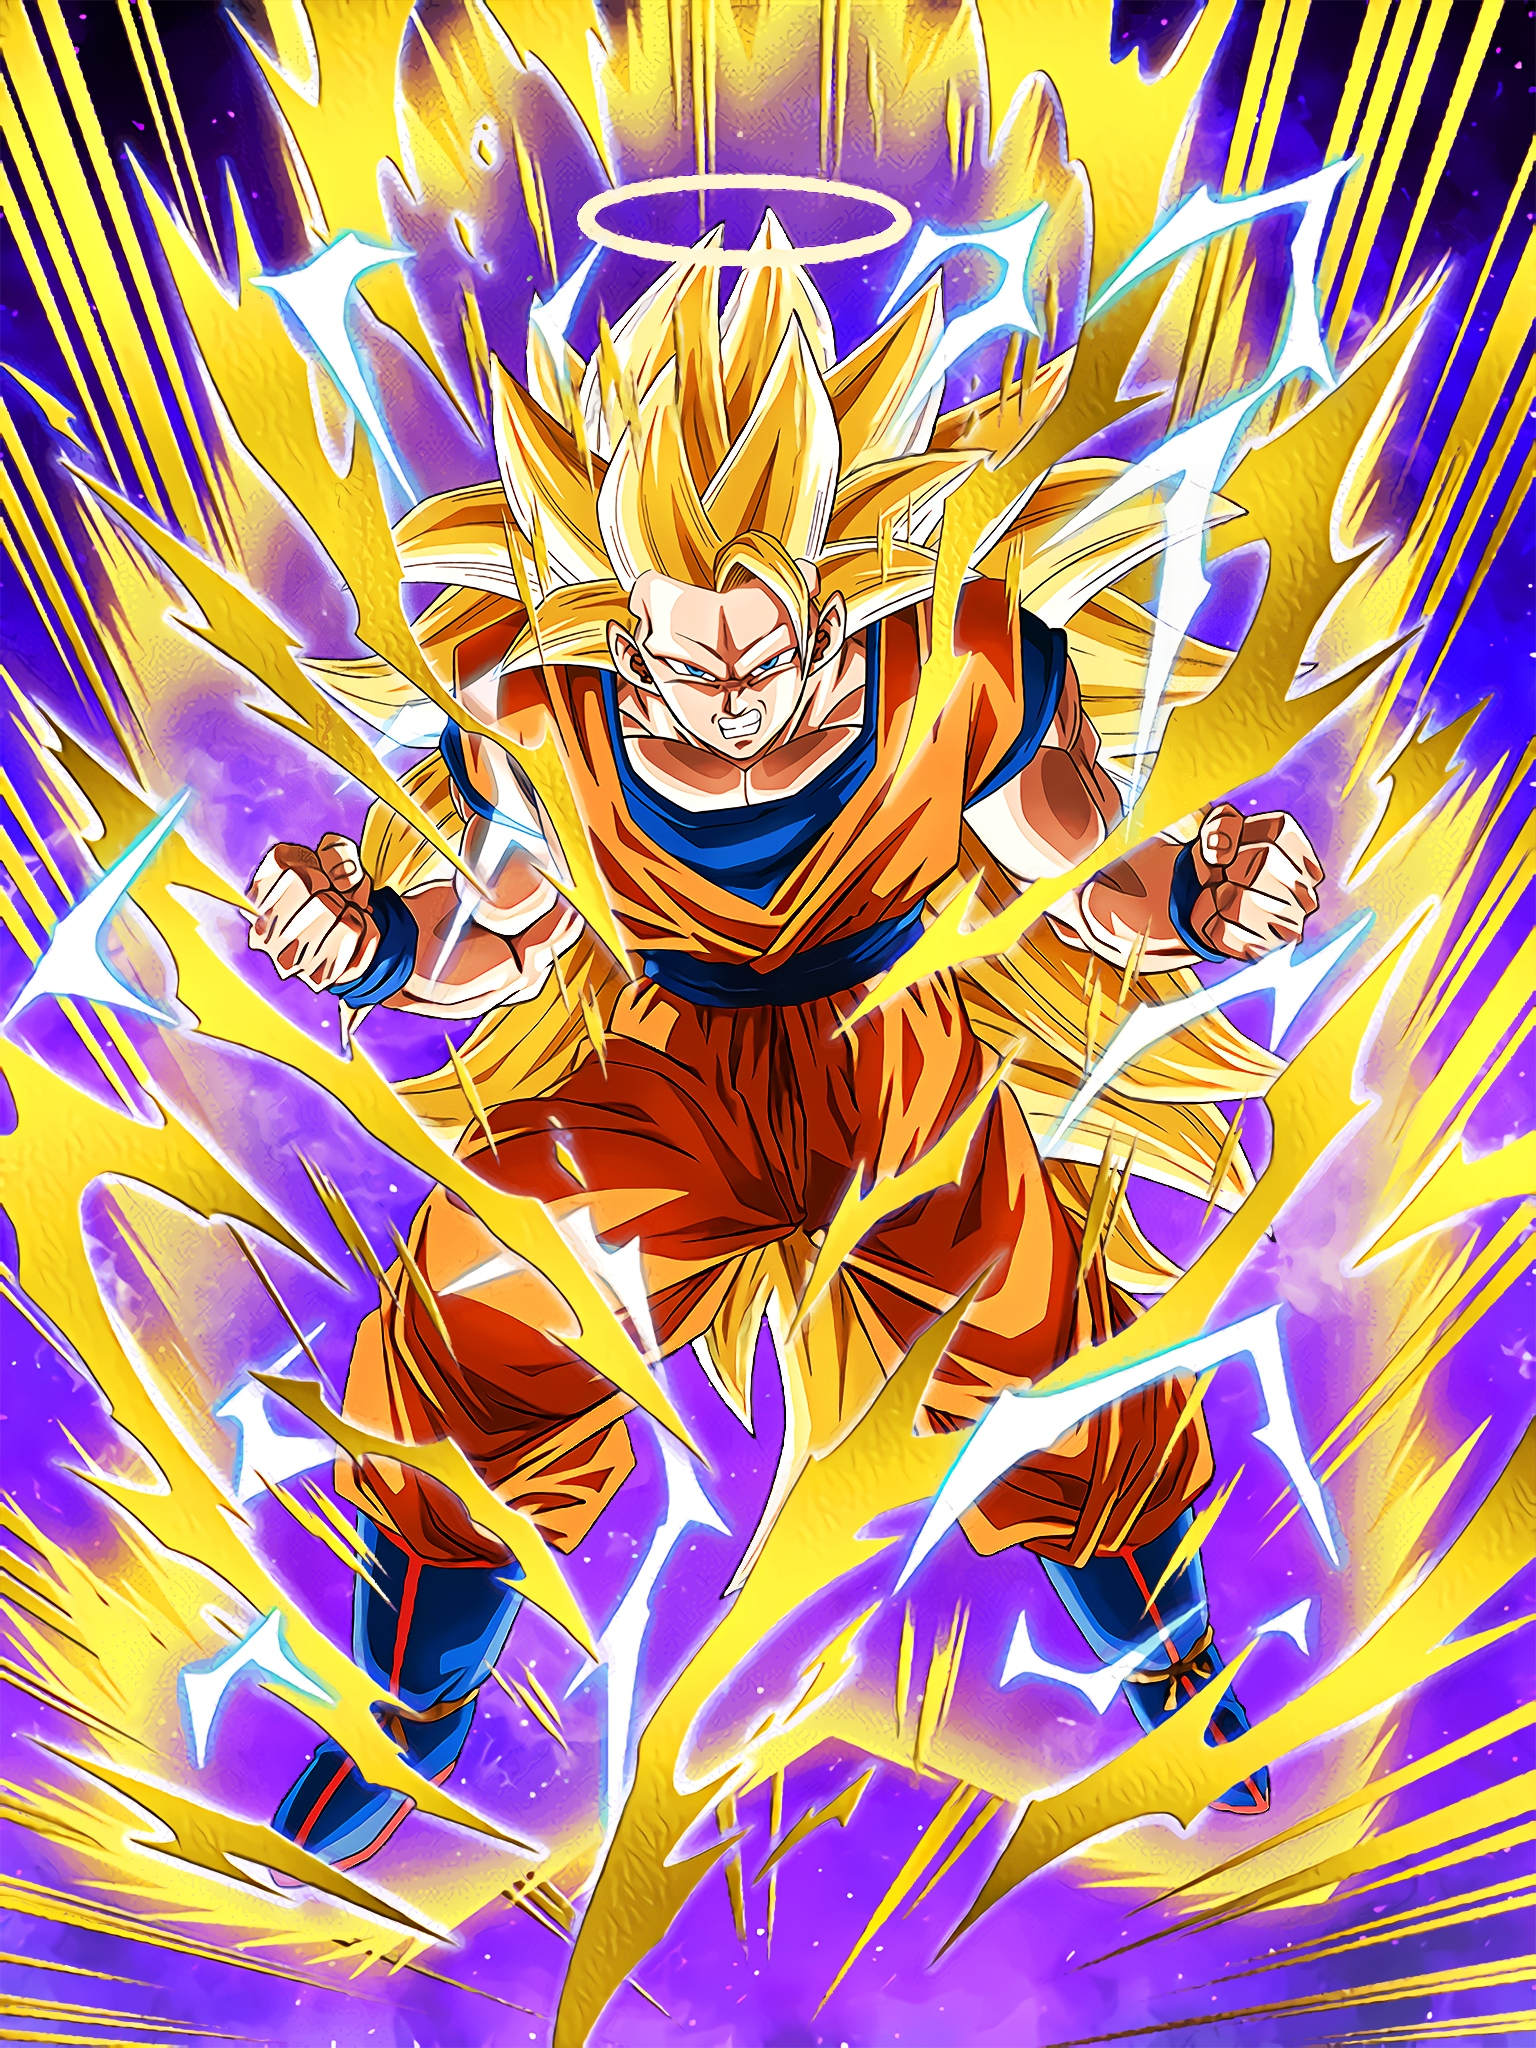 Extreme Power Brawl Super Saiyan 3 Goku Angel Art Dragon Ball Z Dokkan Battle Jpg Wallpaper Aiktry